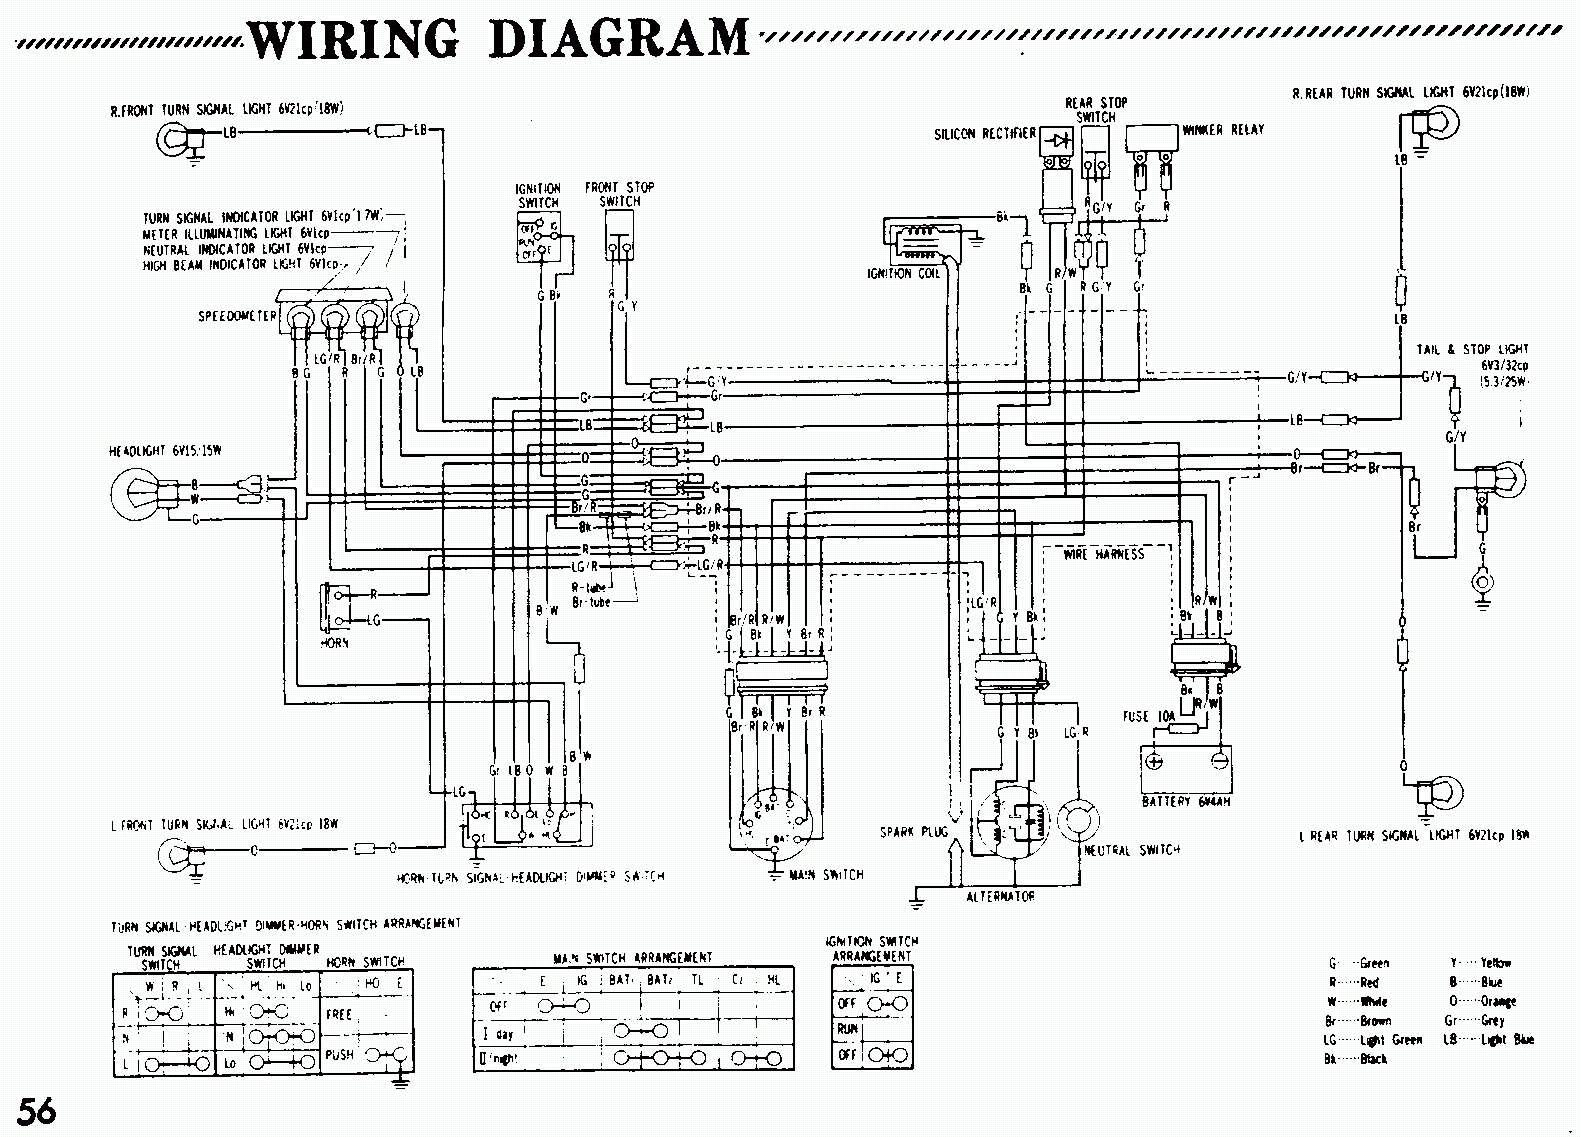 honda ct70 wiring clean schematics wiring diagrams u2022 rh rslroyalty com